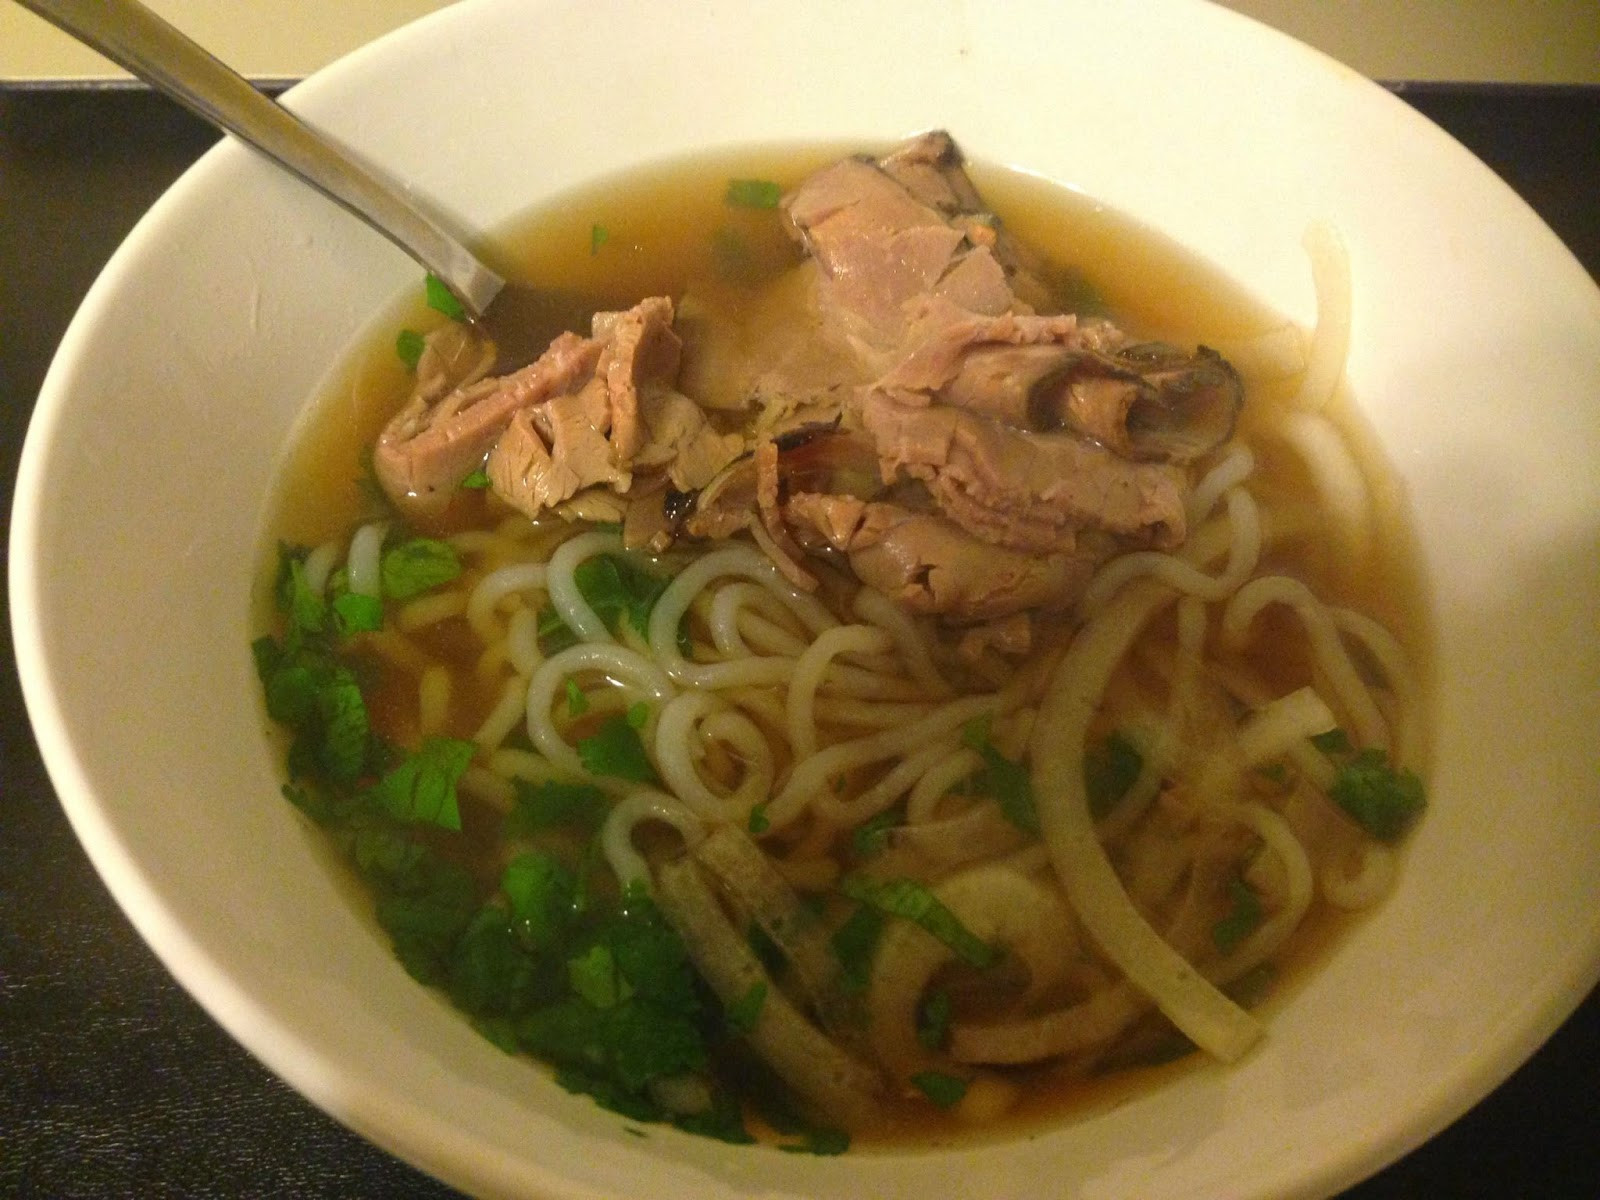 Noodles For Keto Diet  5 Best Low Carb Substitutes for your Favorite Foods on